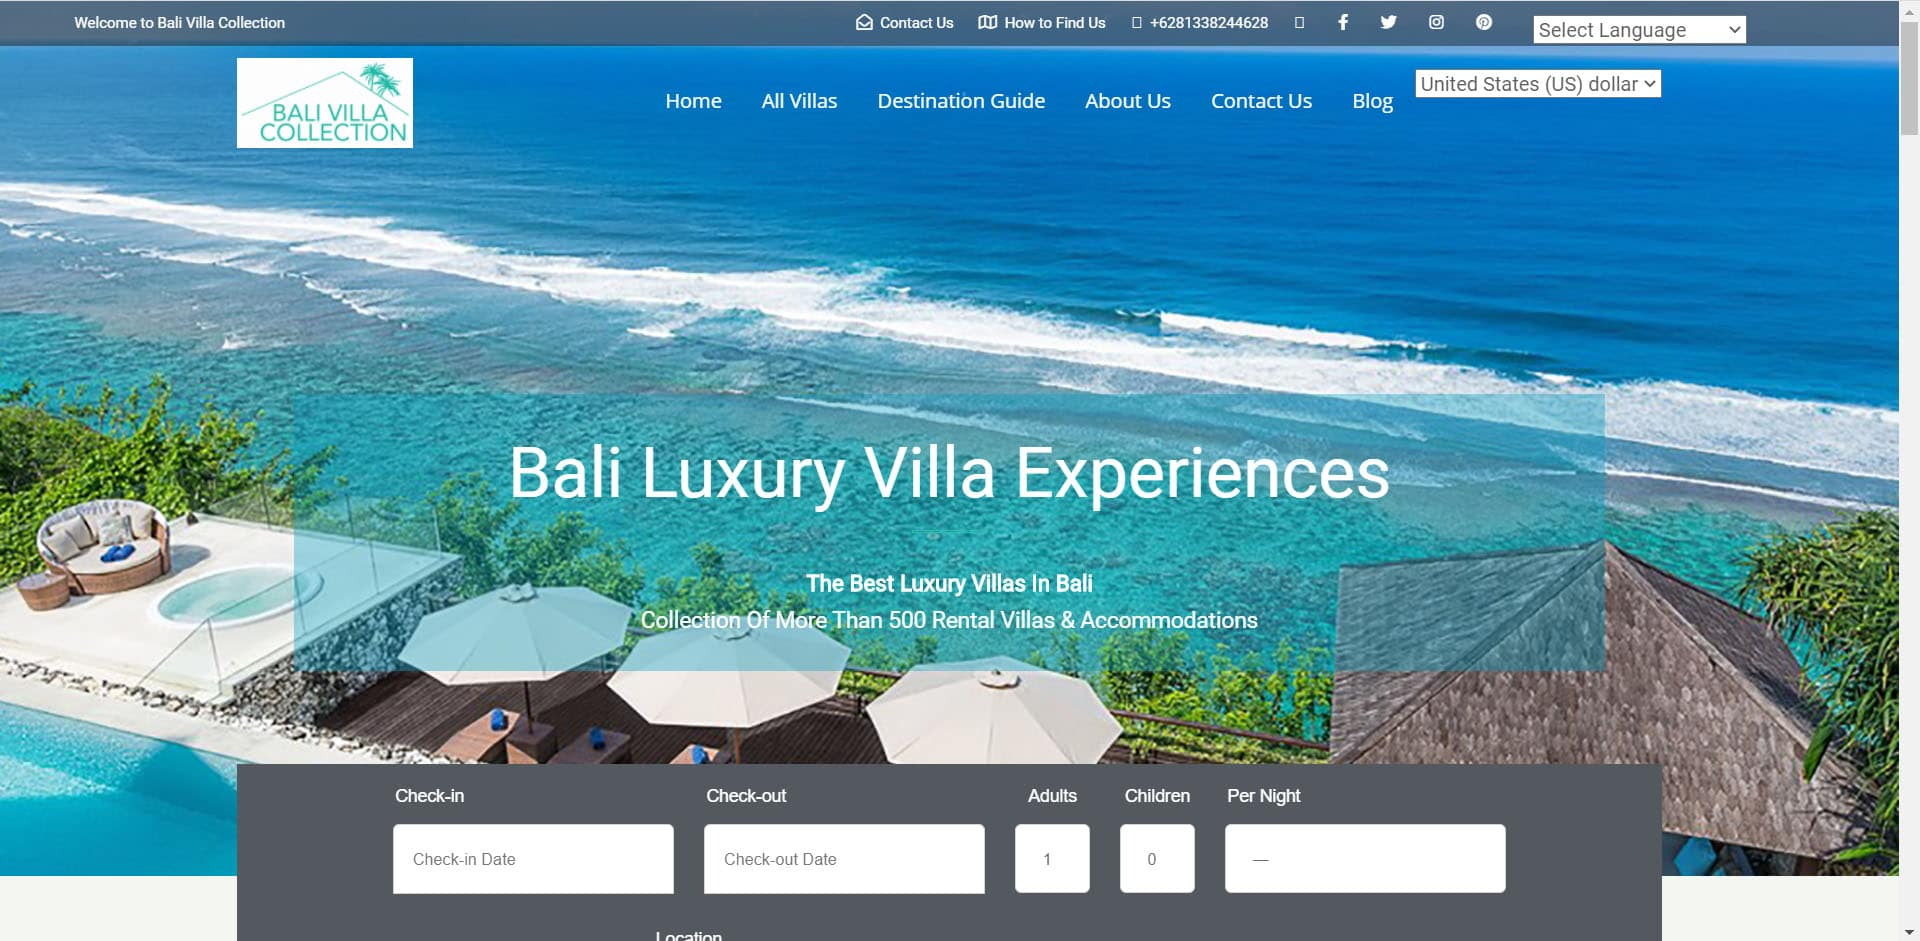 Bali Villa Collection - Home Page Banner